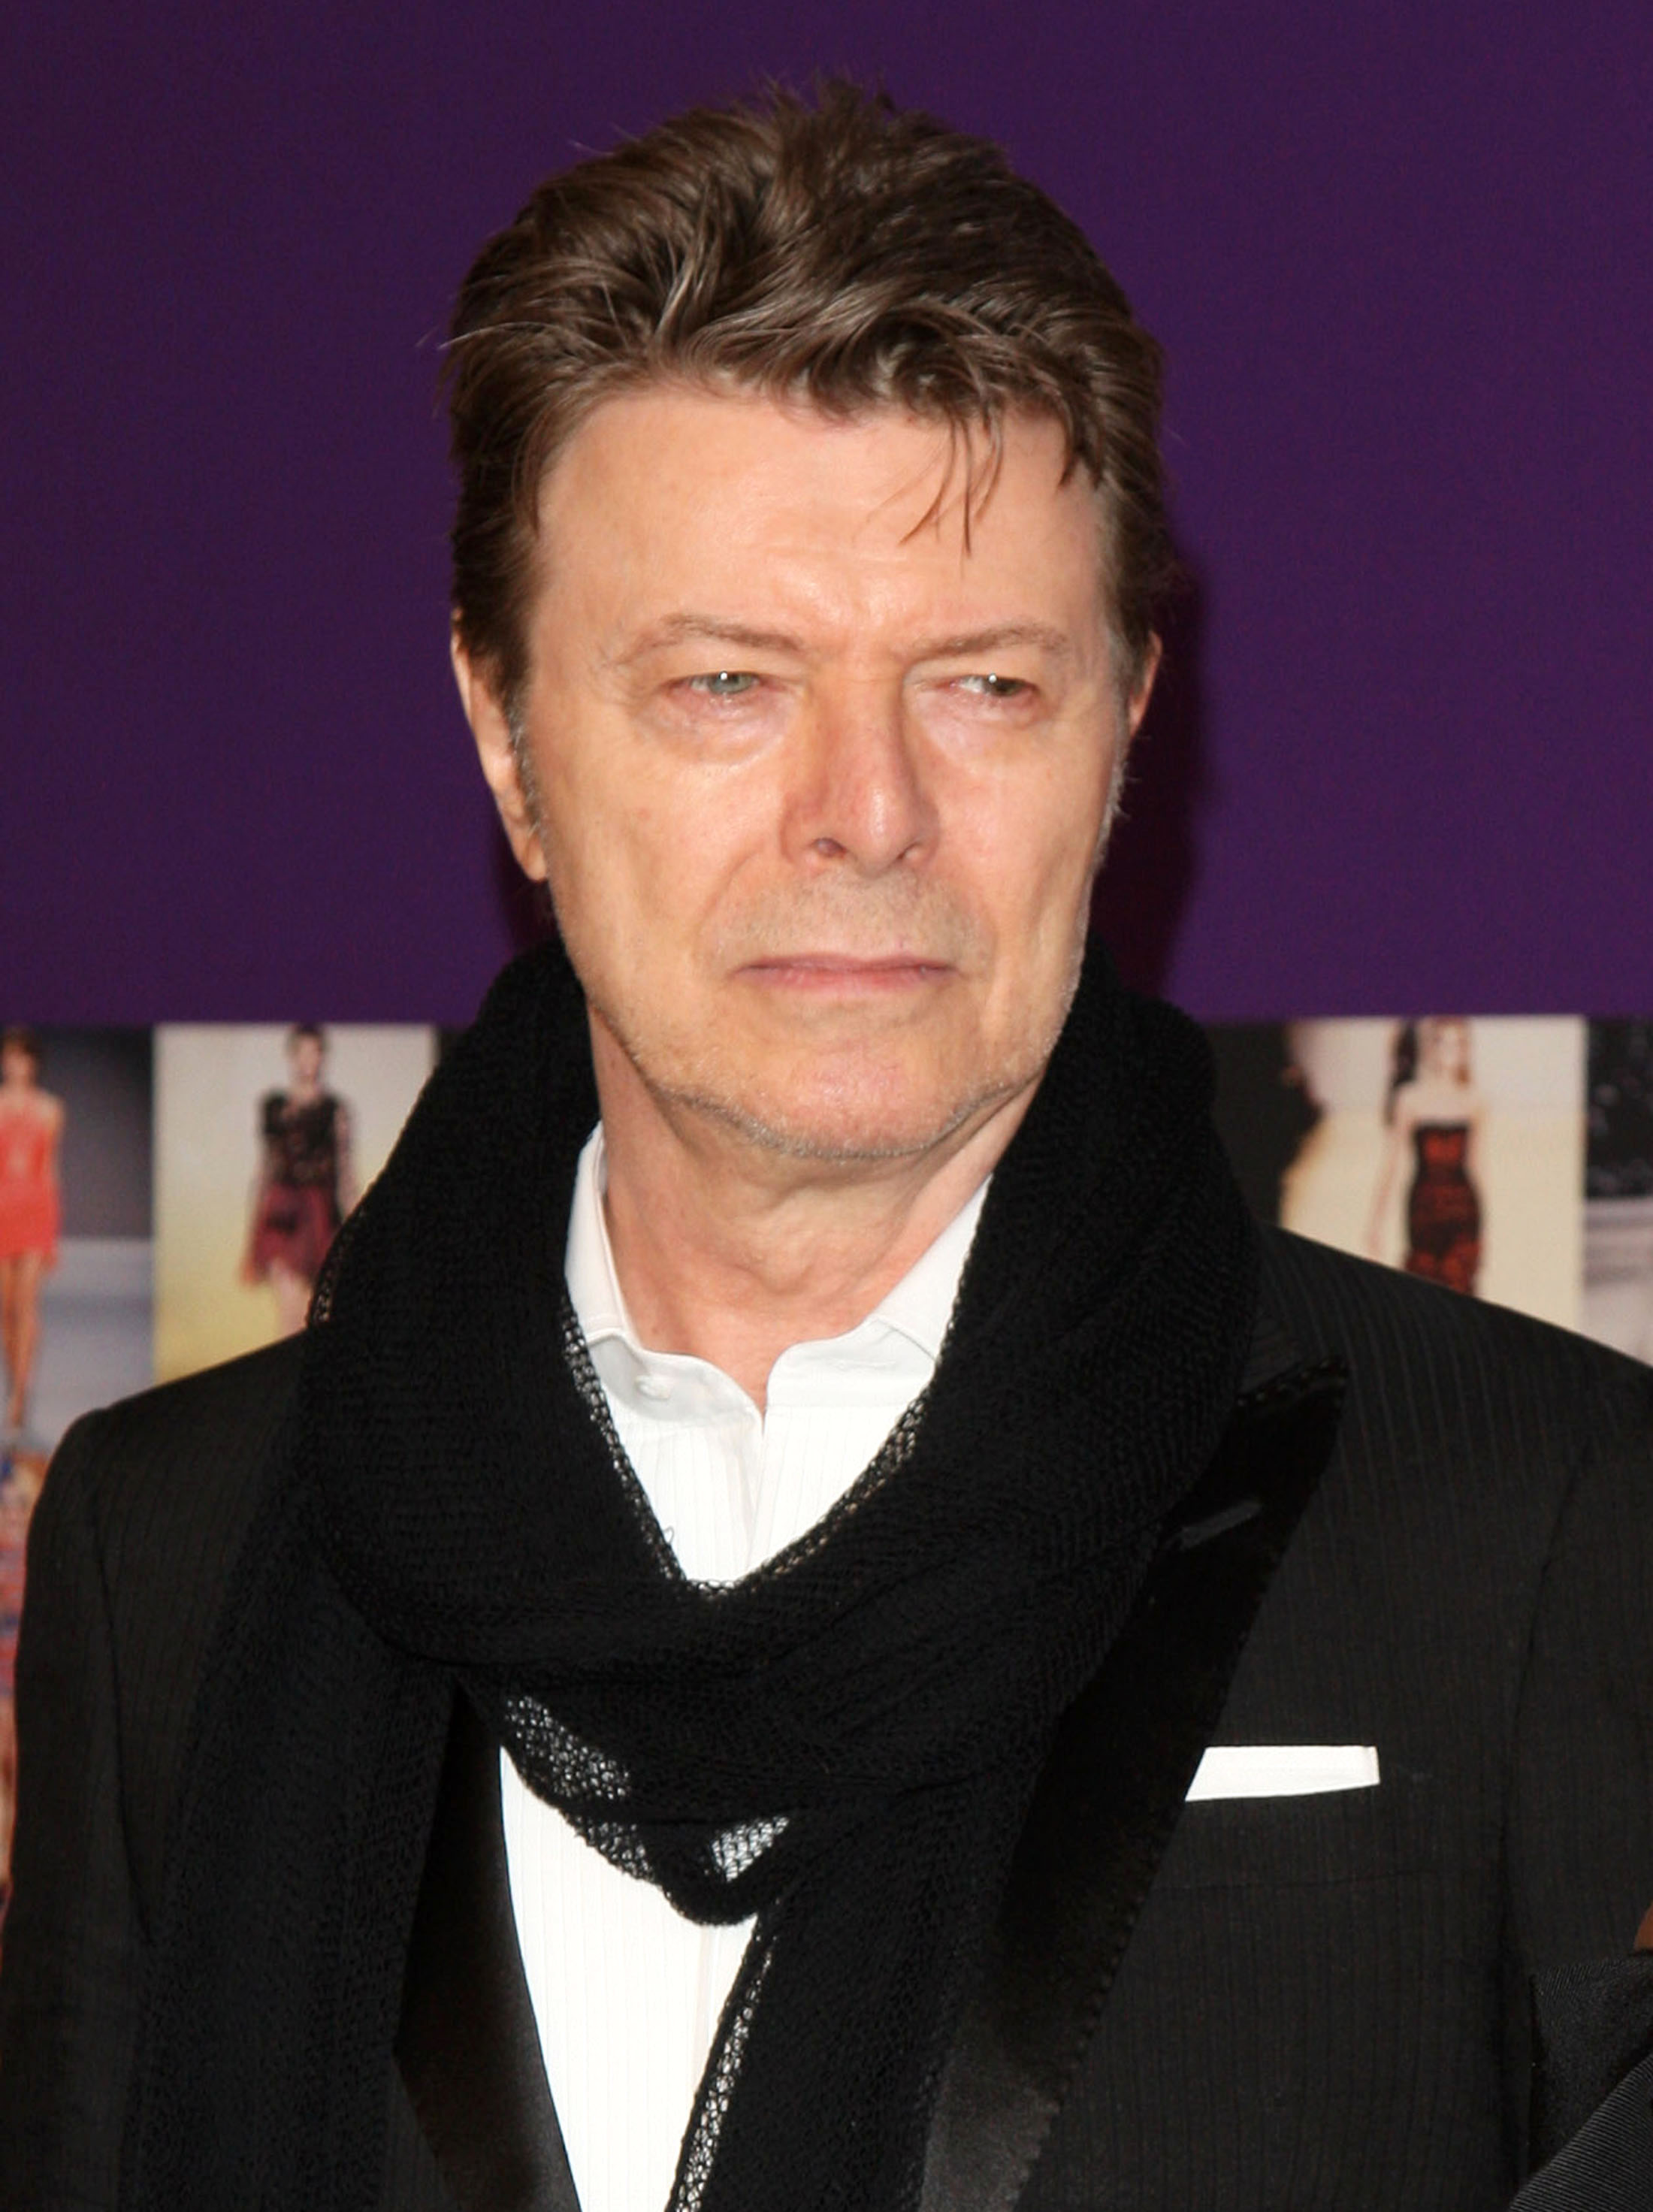 With farewell album, David Bowie tops U.S. album charts for first time